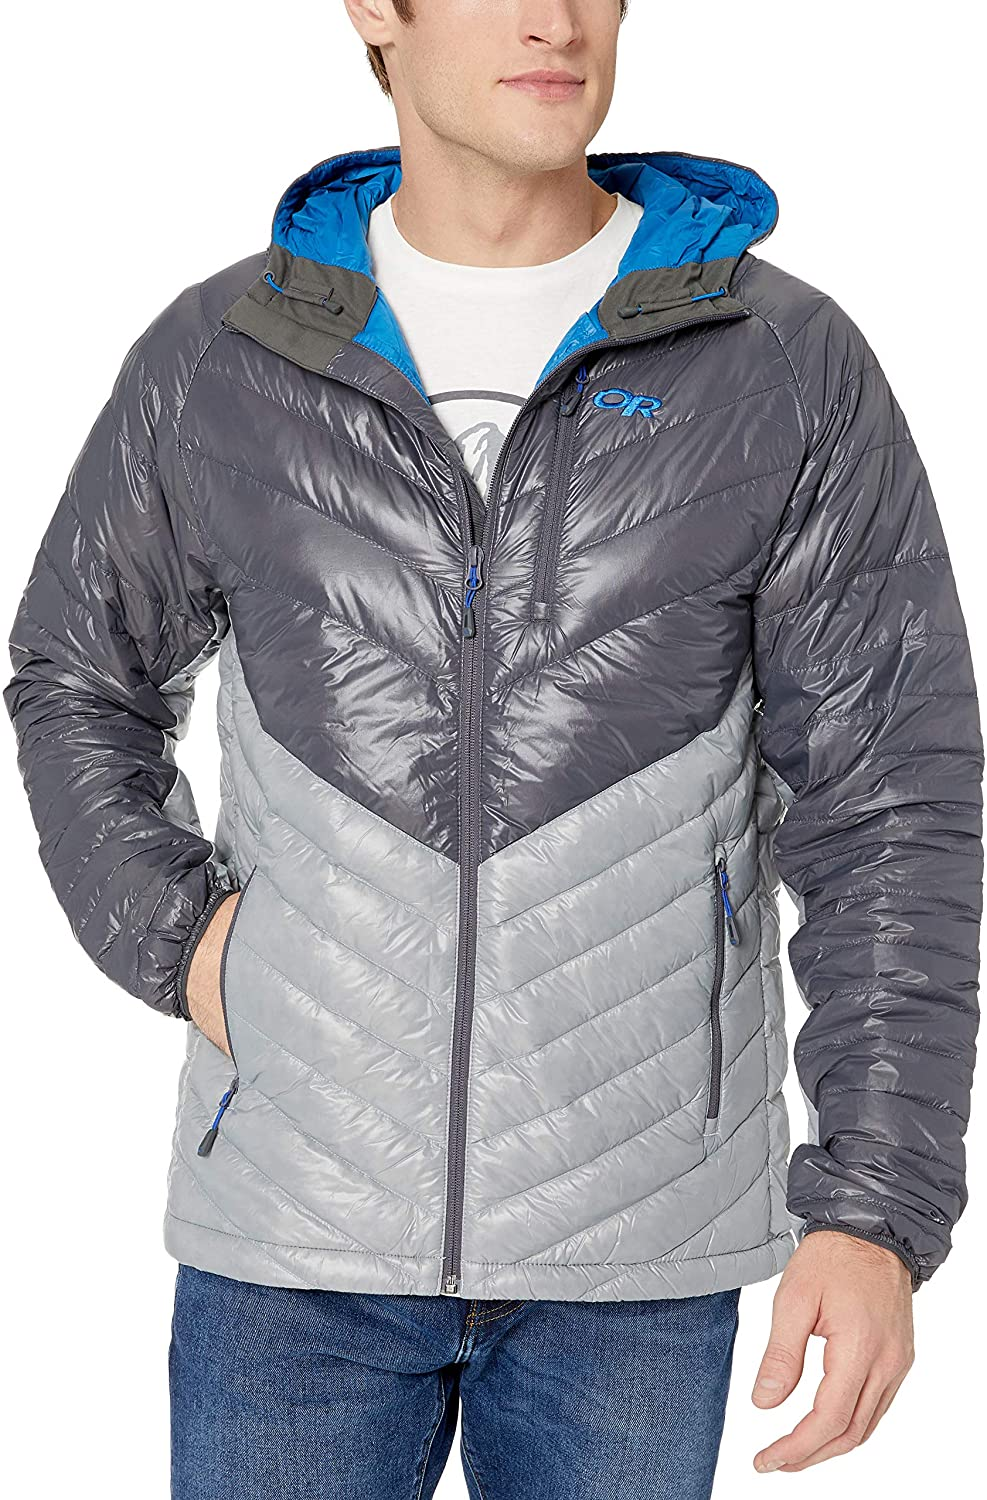 Outdoor Research mens Ms Illuminate Down Hoody